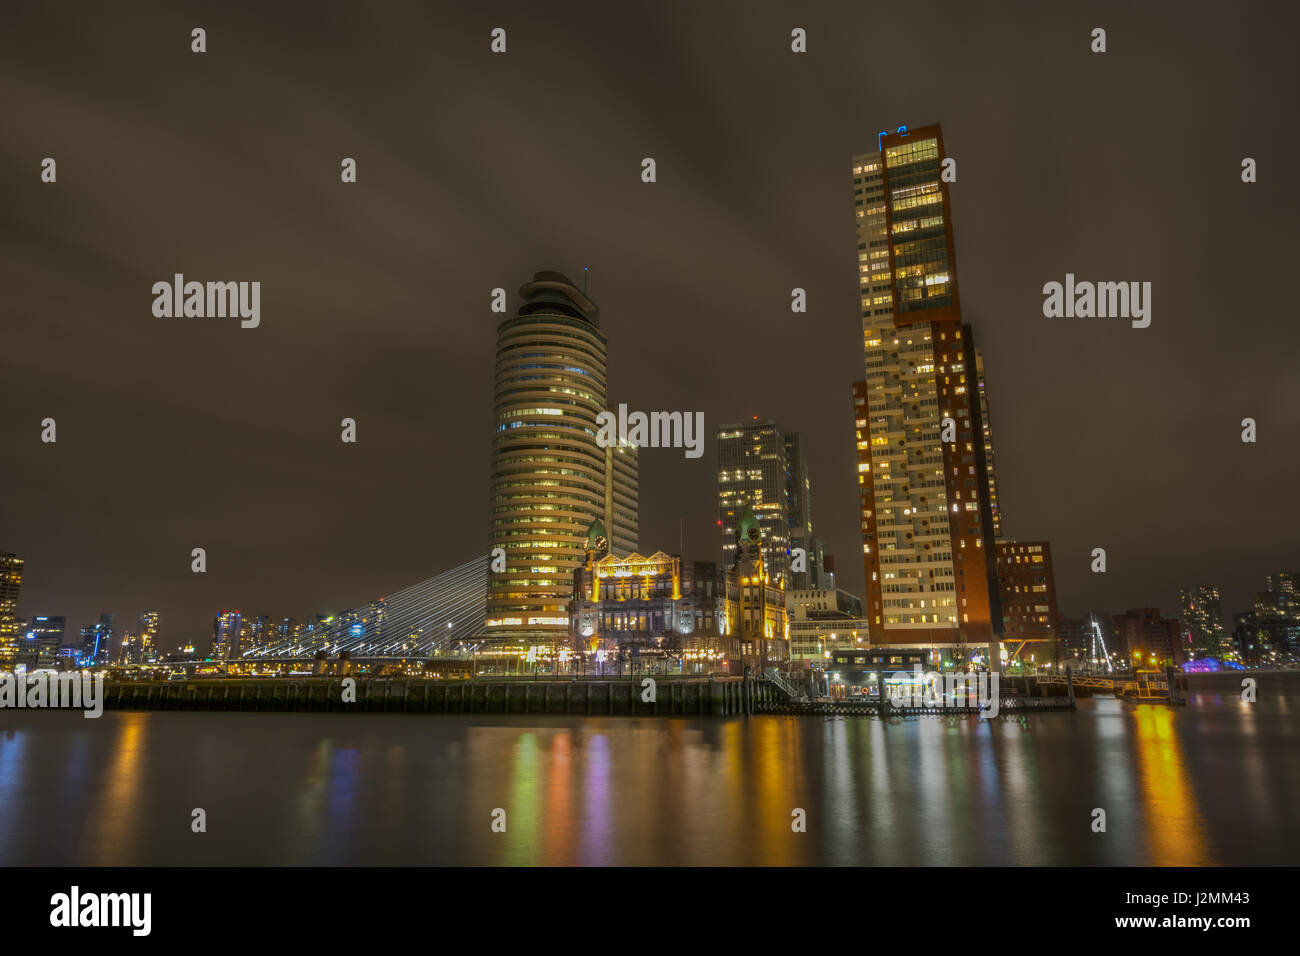 The Hotel New York and Kop Van Zuid in Rotterdam, Netherlands, seen at night from Katendrecht Stock Photo